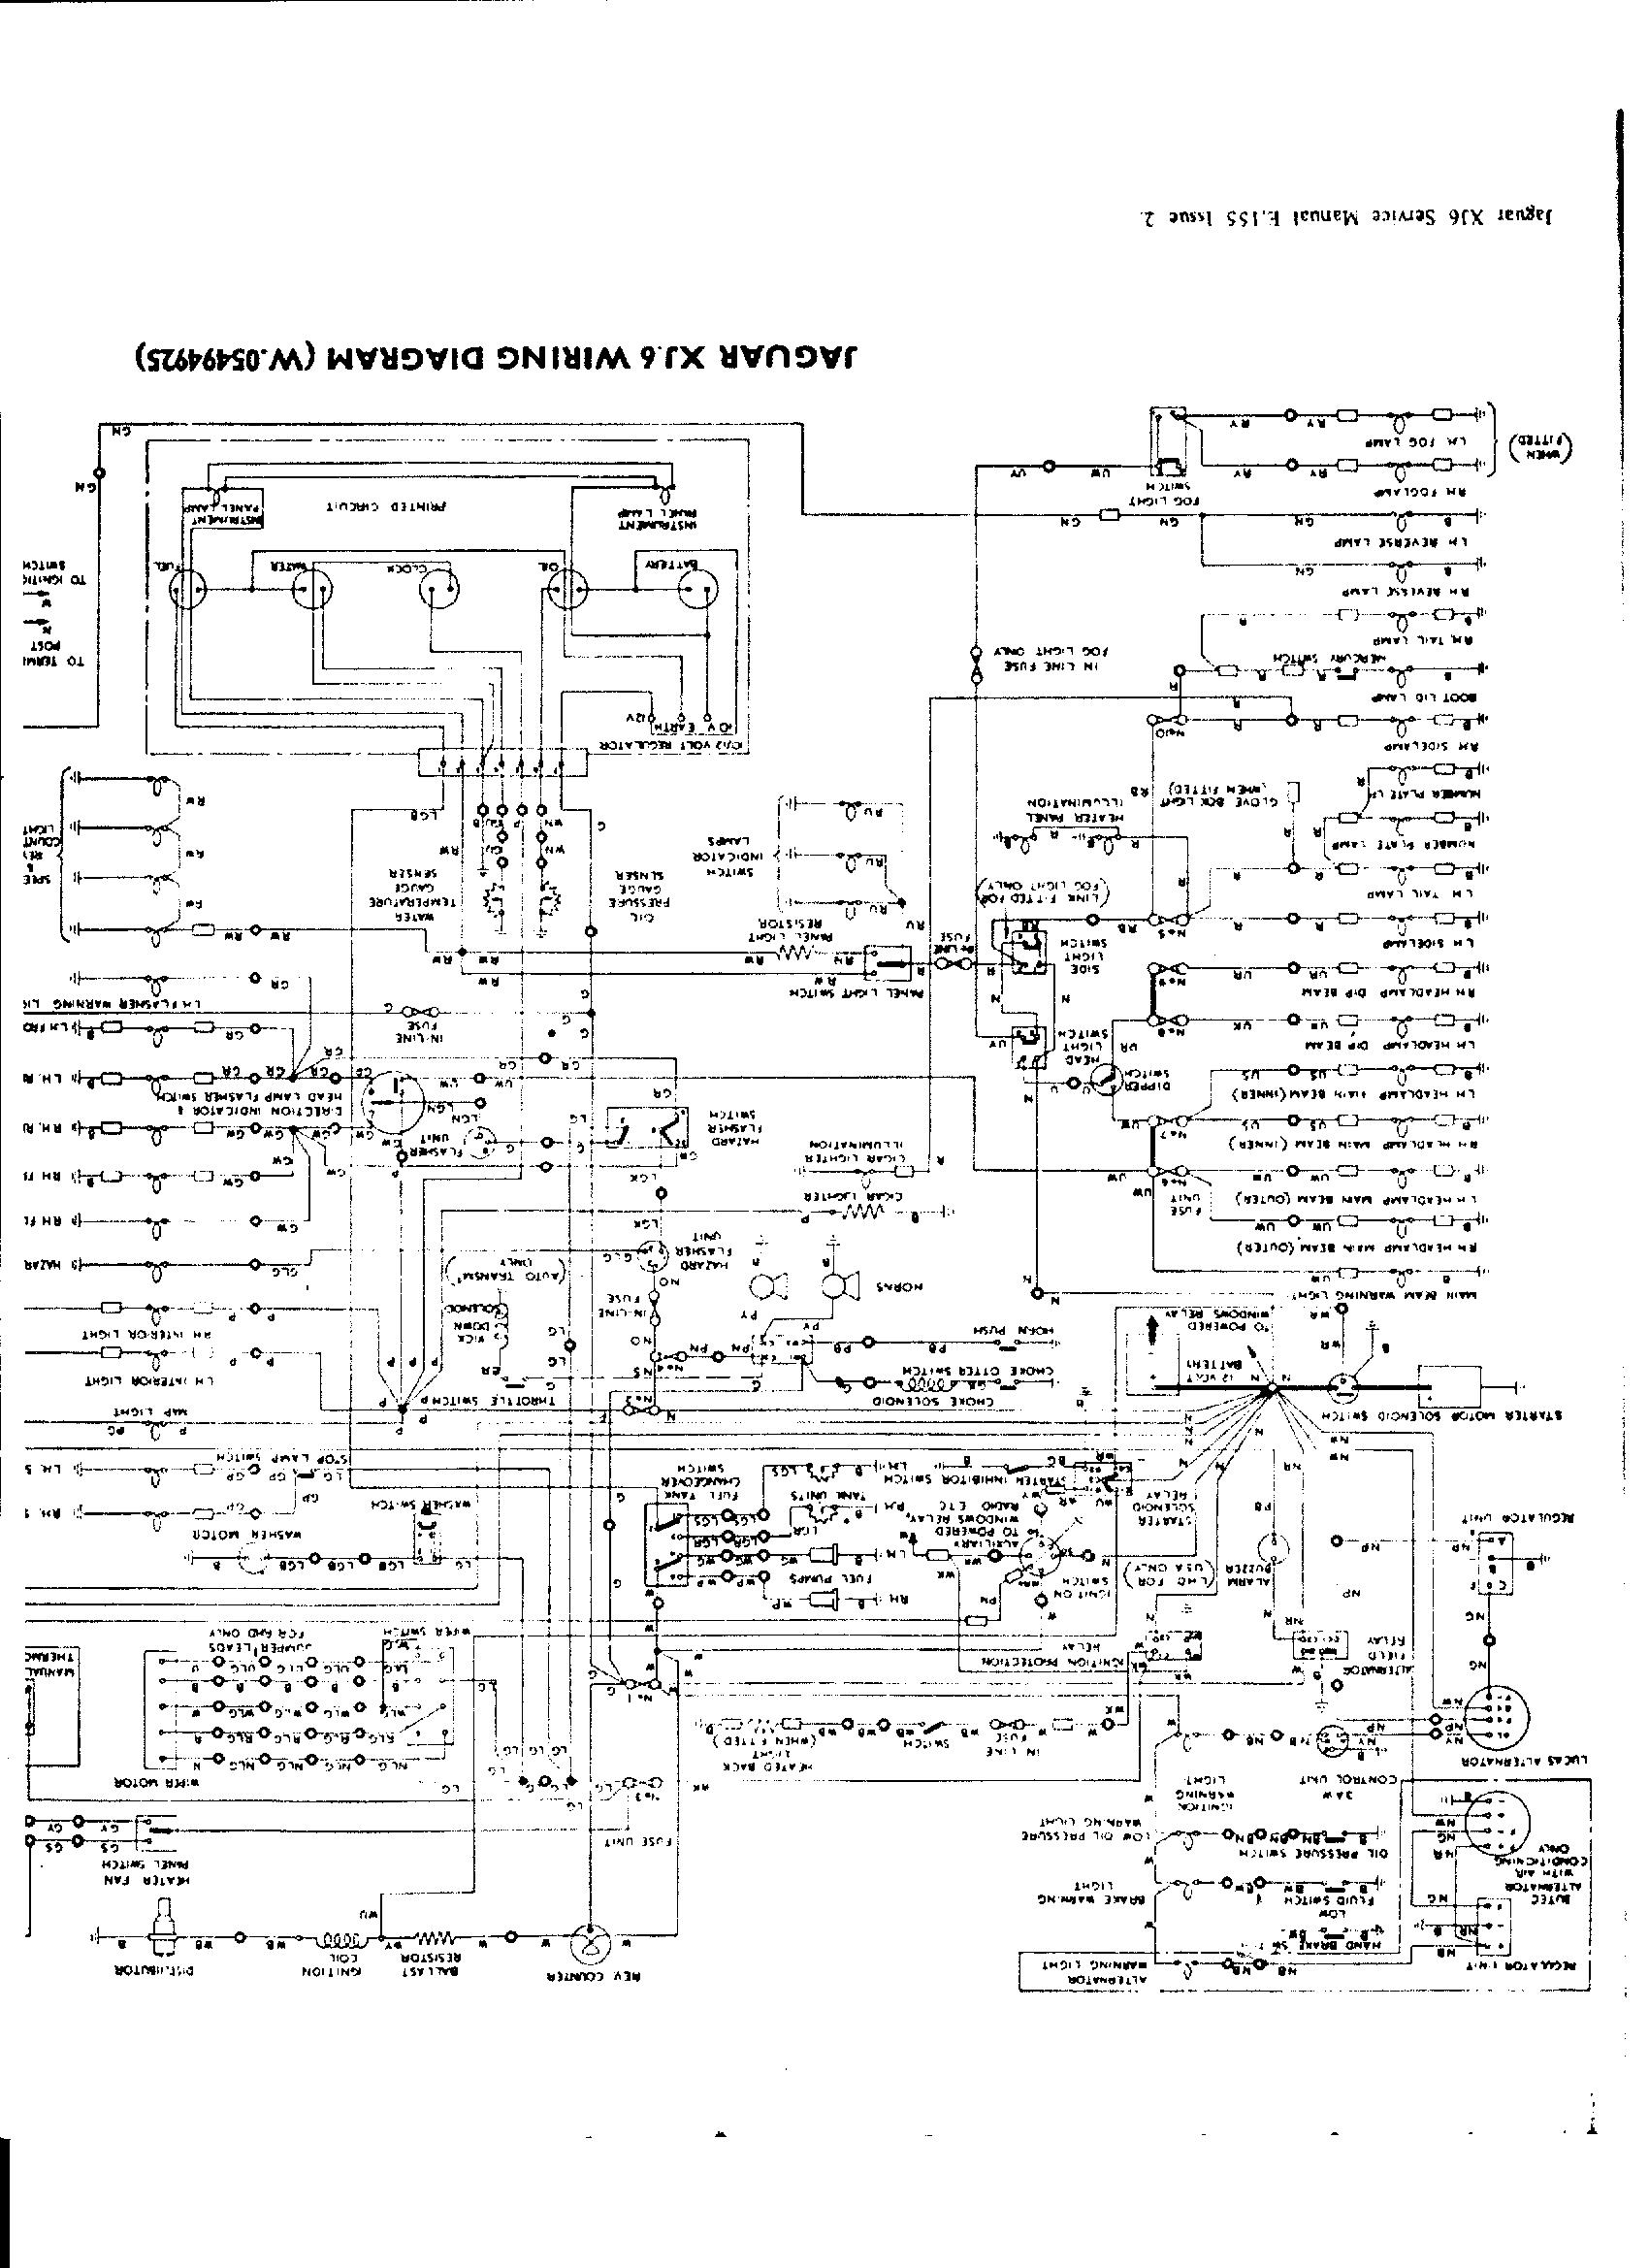 Wiring Diagram Besides 1966 Chevy C10 Wiring Diagram On 1966 Chevy